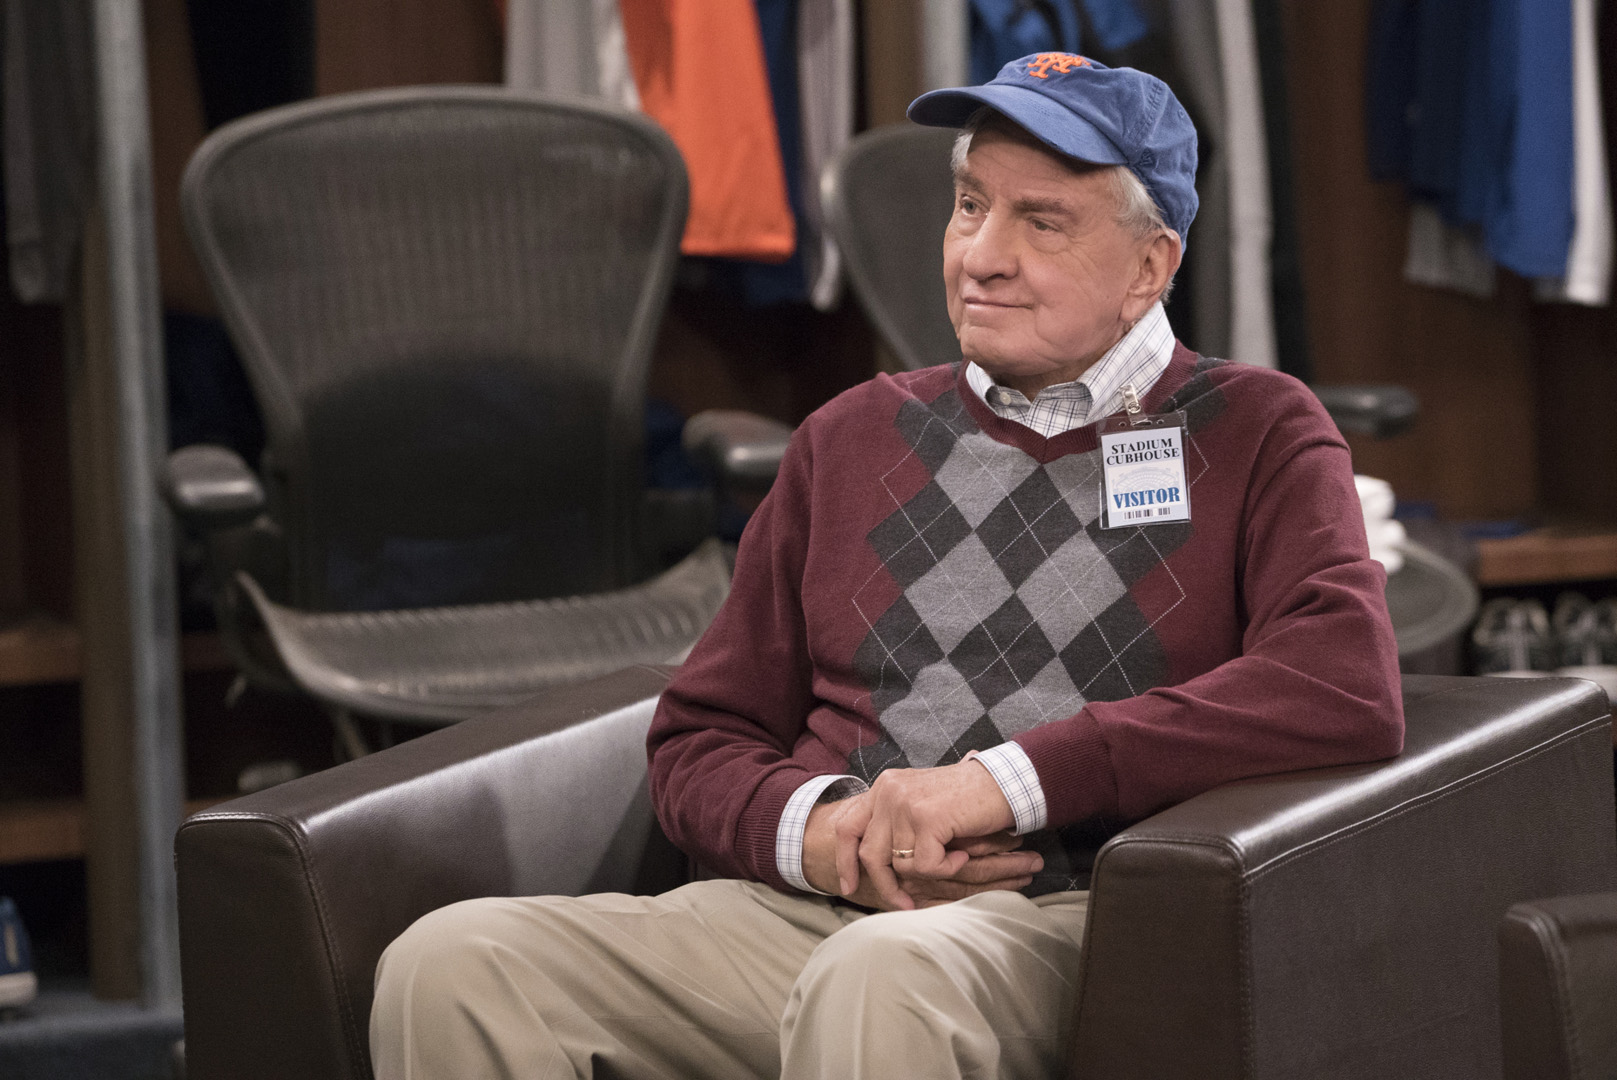 Oscar's father, Walter, gets comfortable in the Mets' locker room.